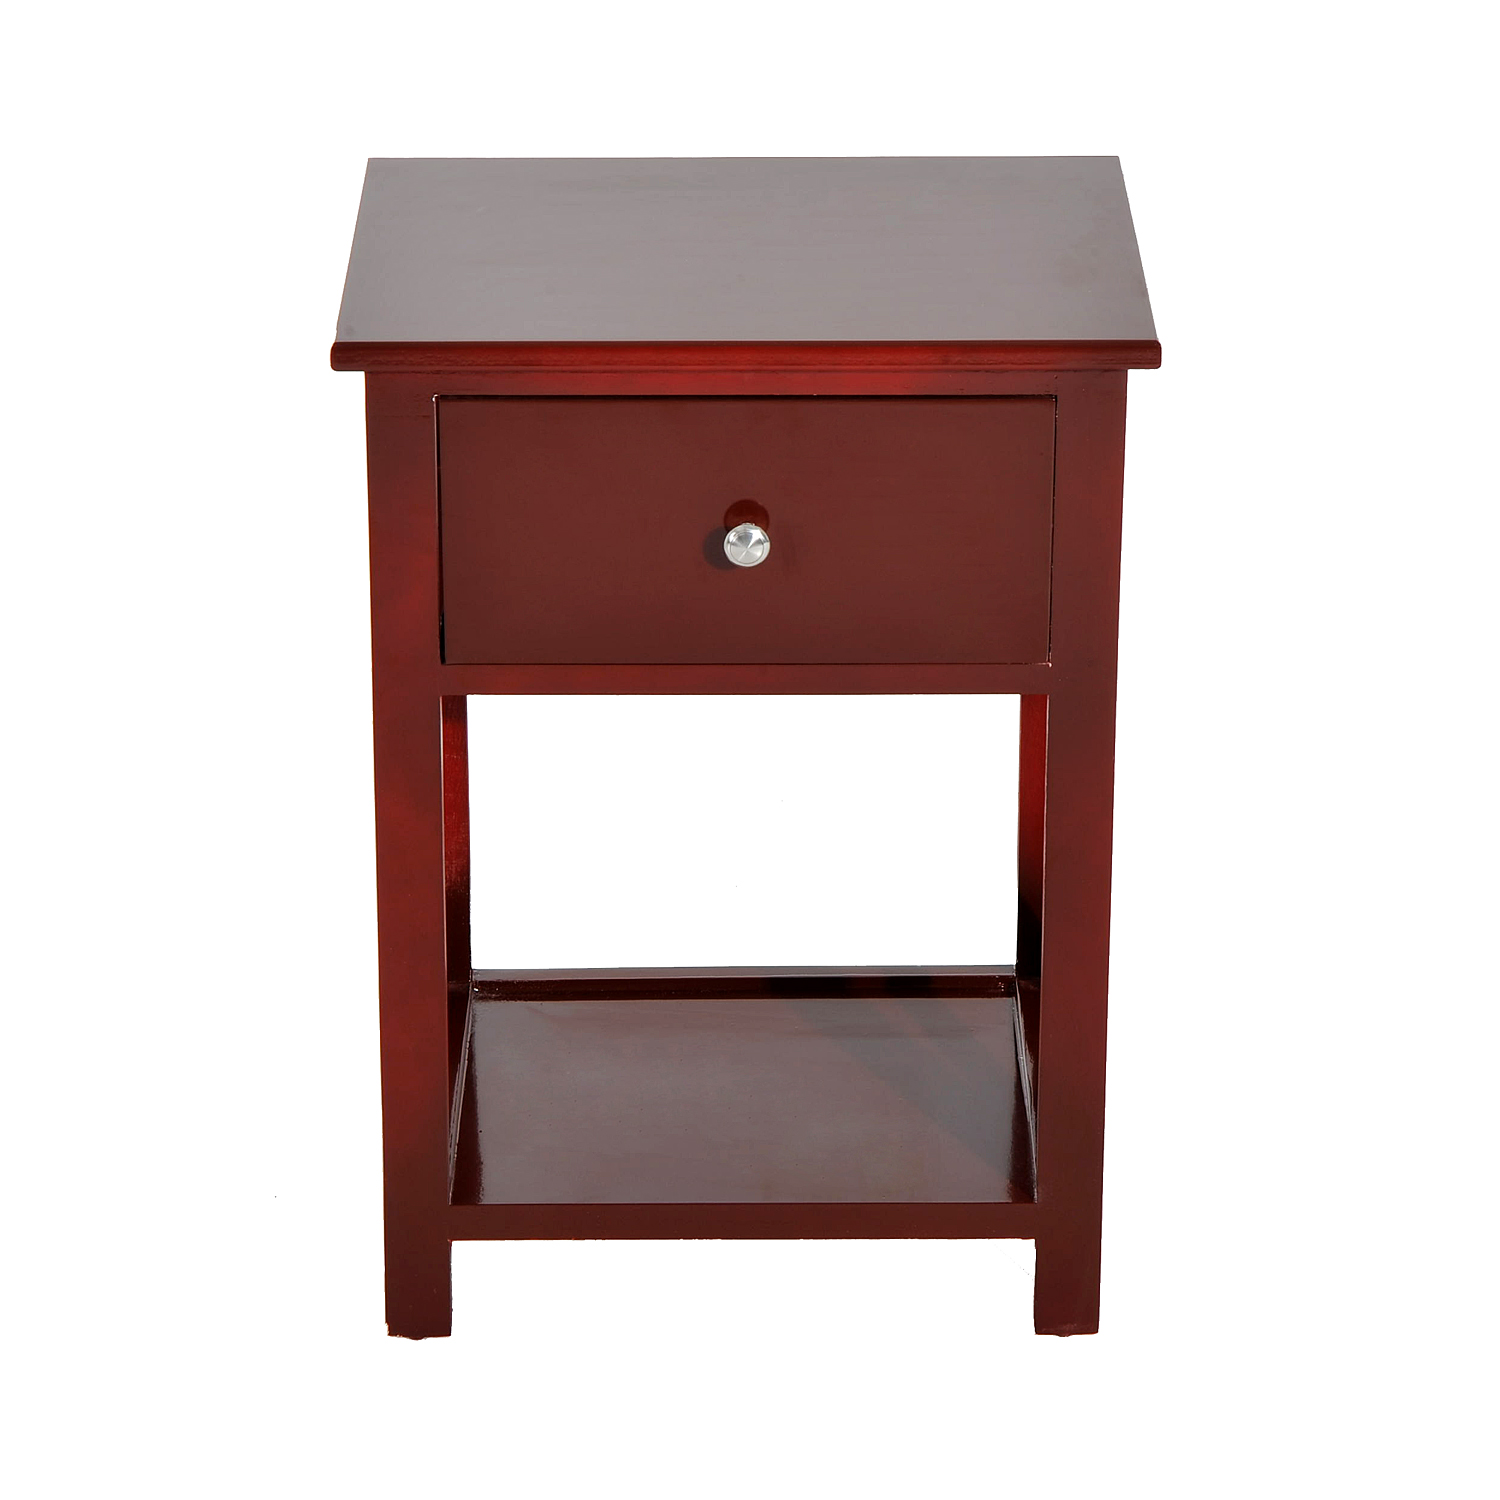 HomCom 22 Traditional Wood Accent End Table With Storage Drawer Chestnut Woodgrain